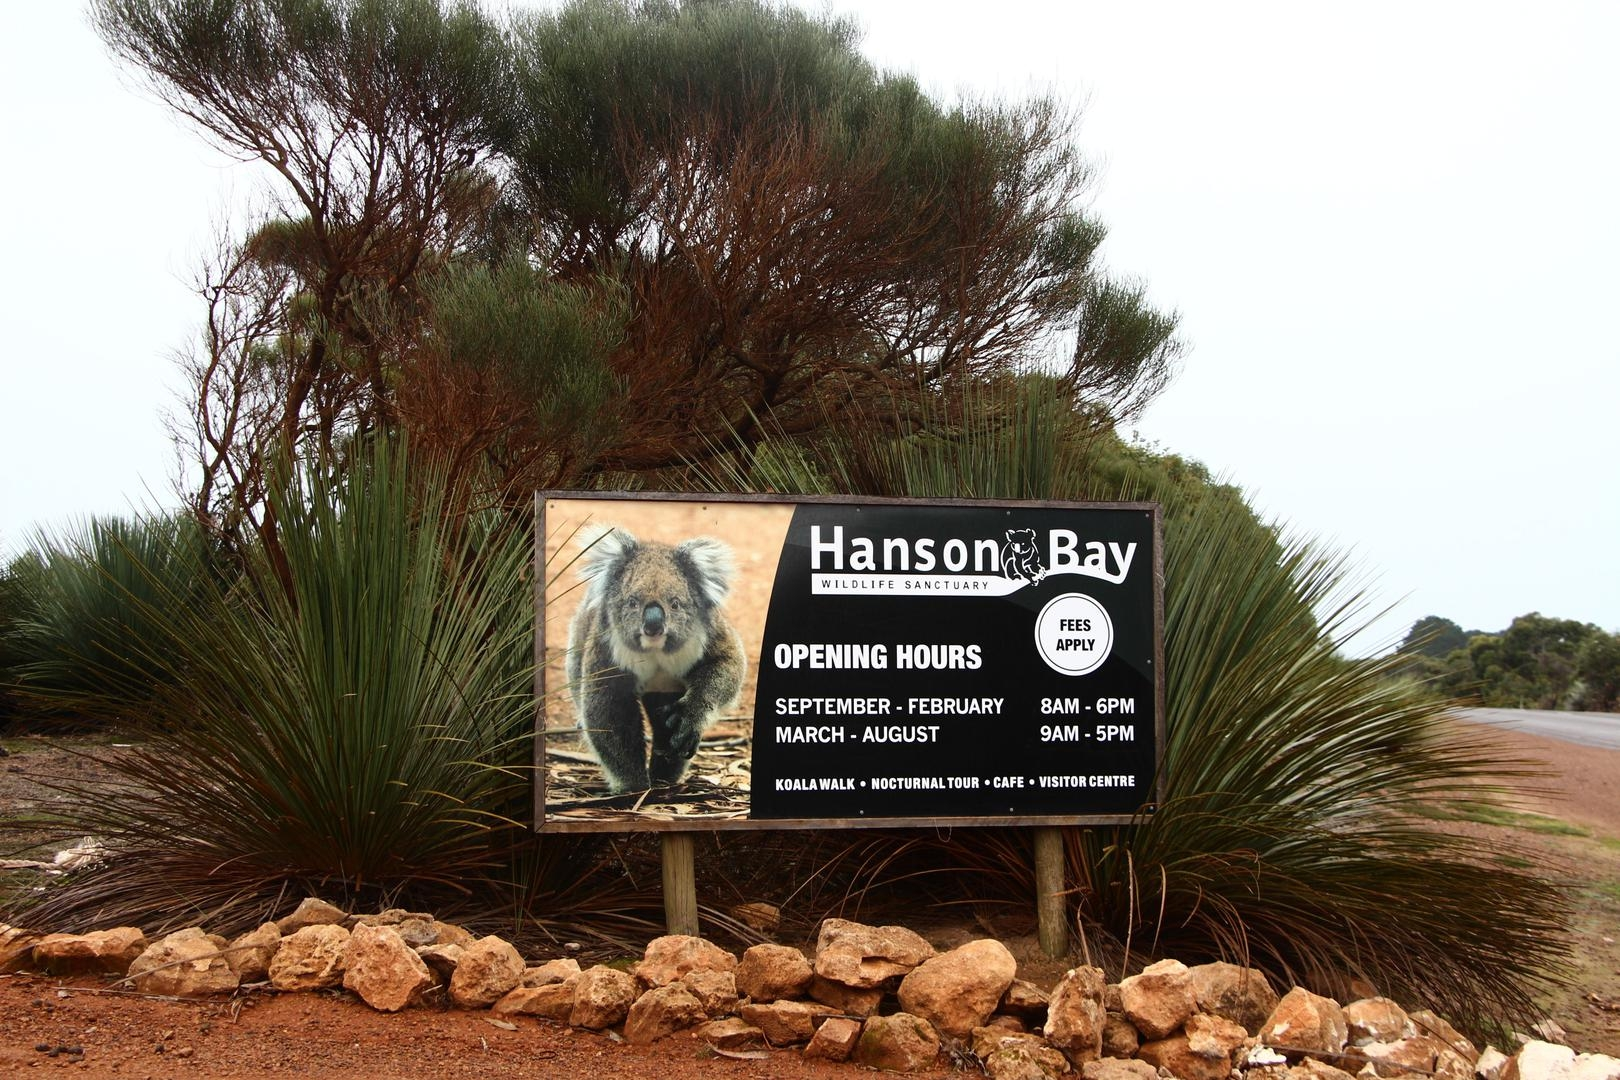 Four day stay at Hanson Bay Nature Reserve